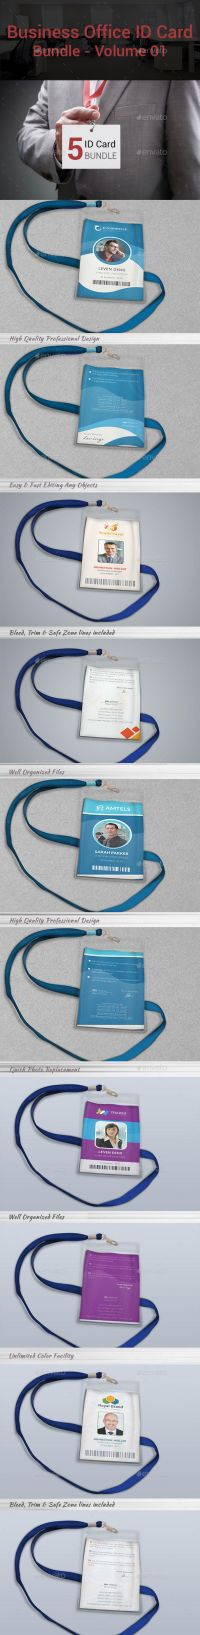 10 Best images about ID Card Design / Lanyard Name Tag ...